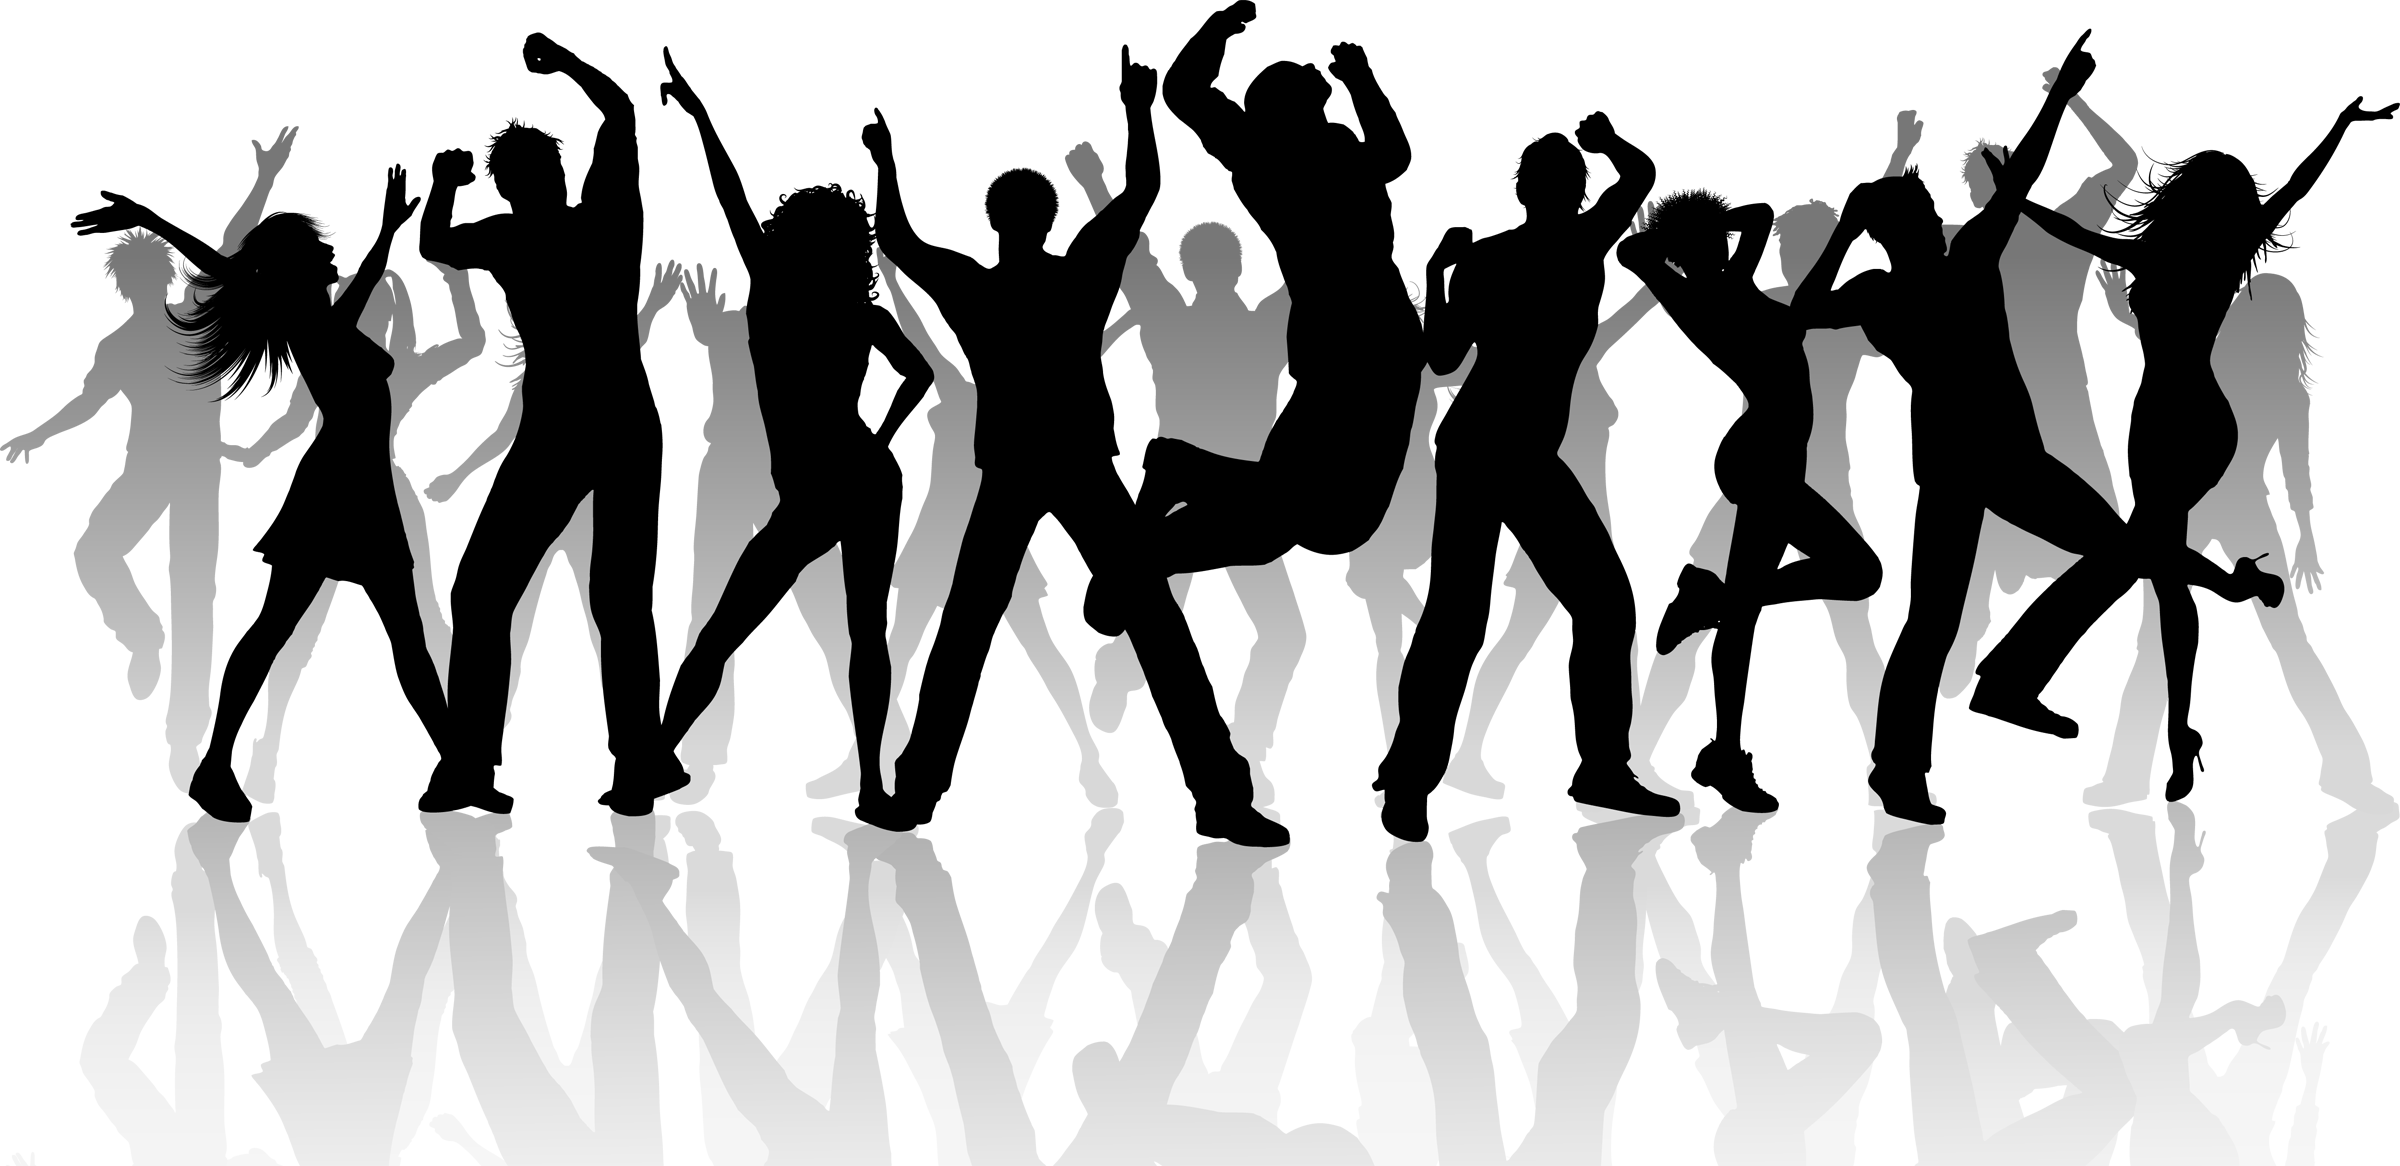 People cliparts co clara. Dancing clipart shadow clip art transparent library